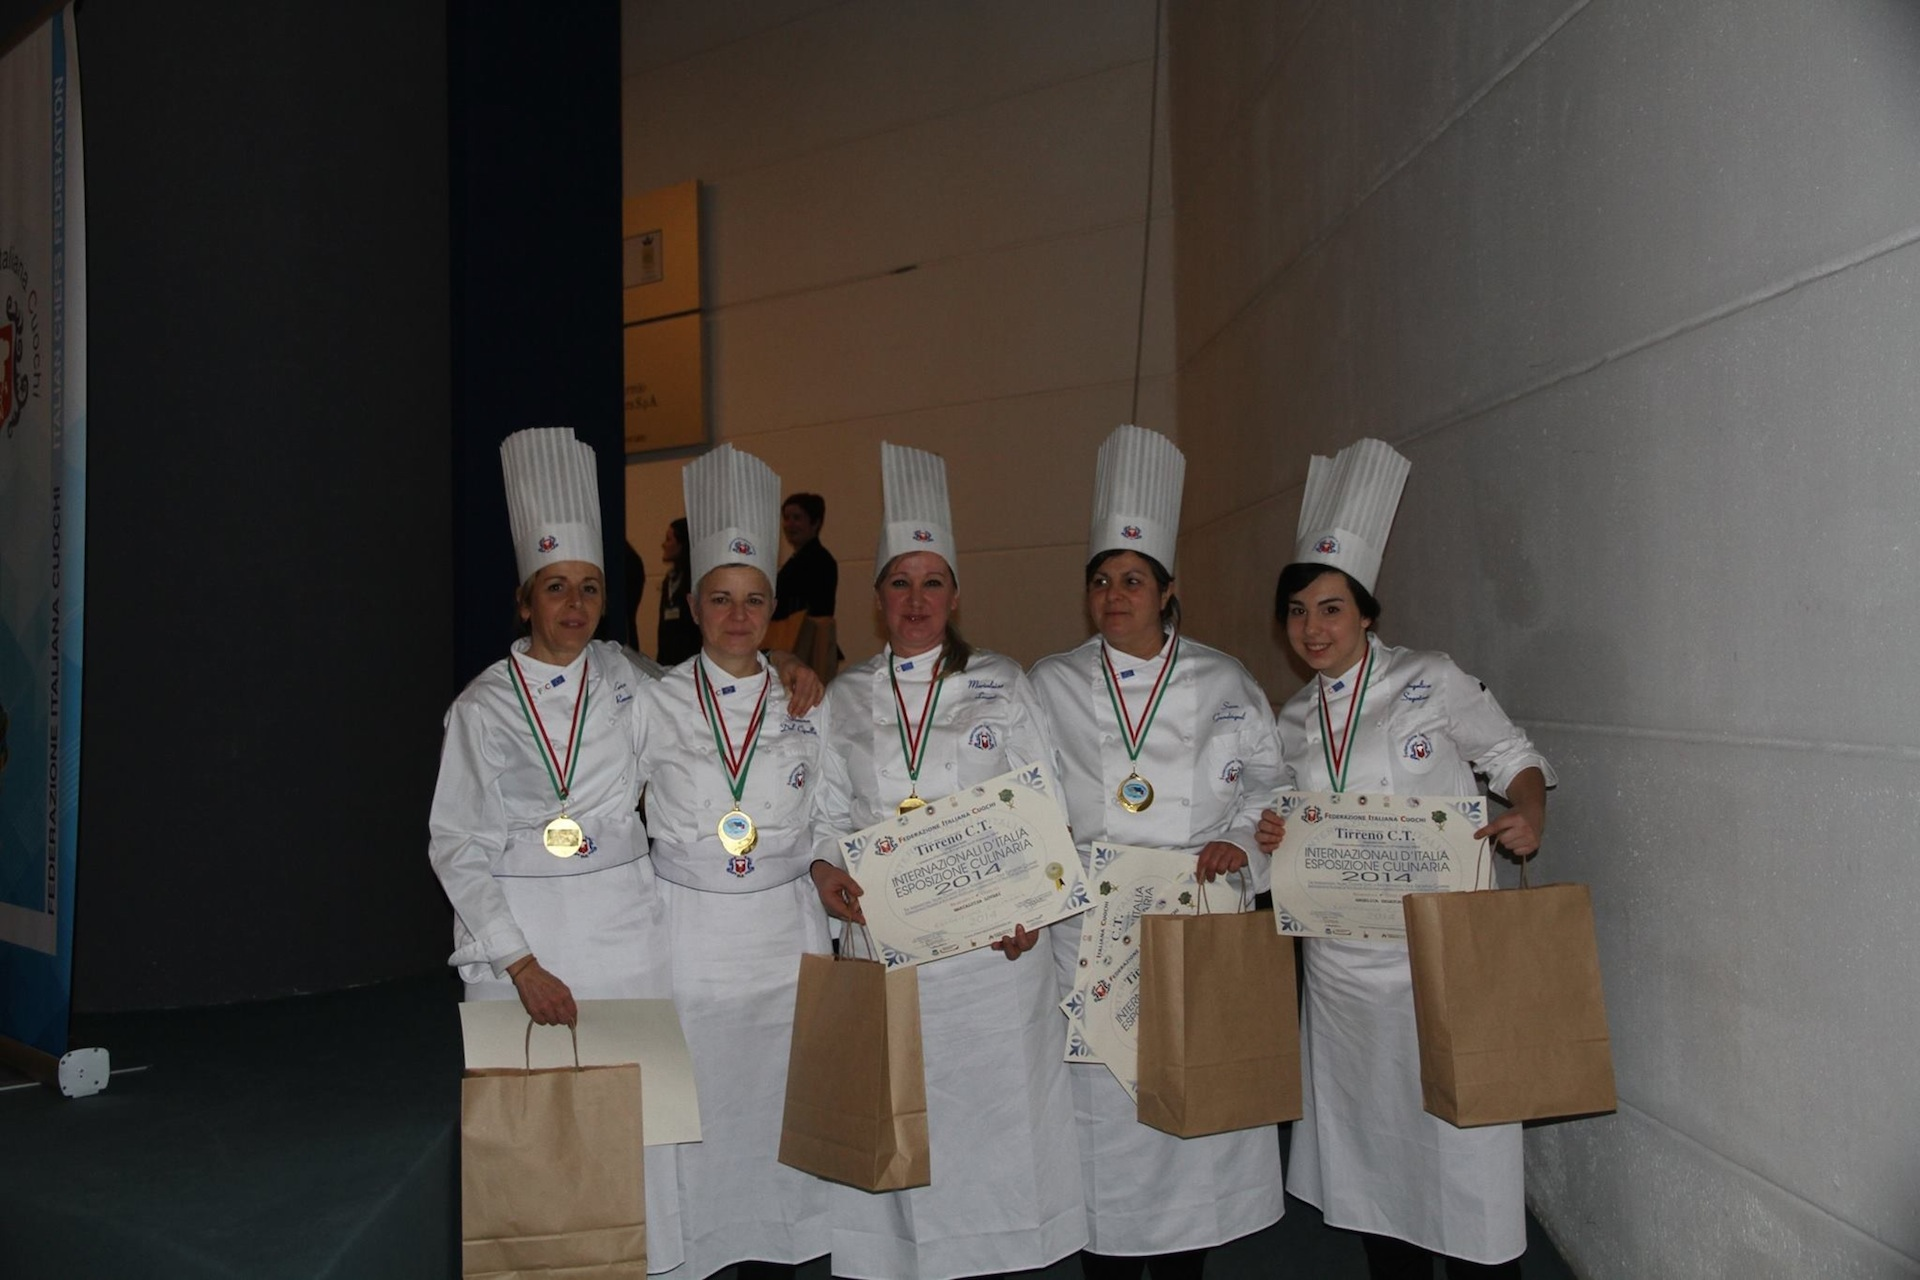 Enrica Romani is part of the women's team of Associazione Cuochi Arezzo that win gold medal at the International Italian Culinary Expo TIRRENO C.T.